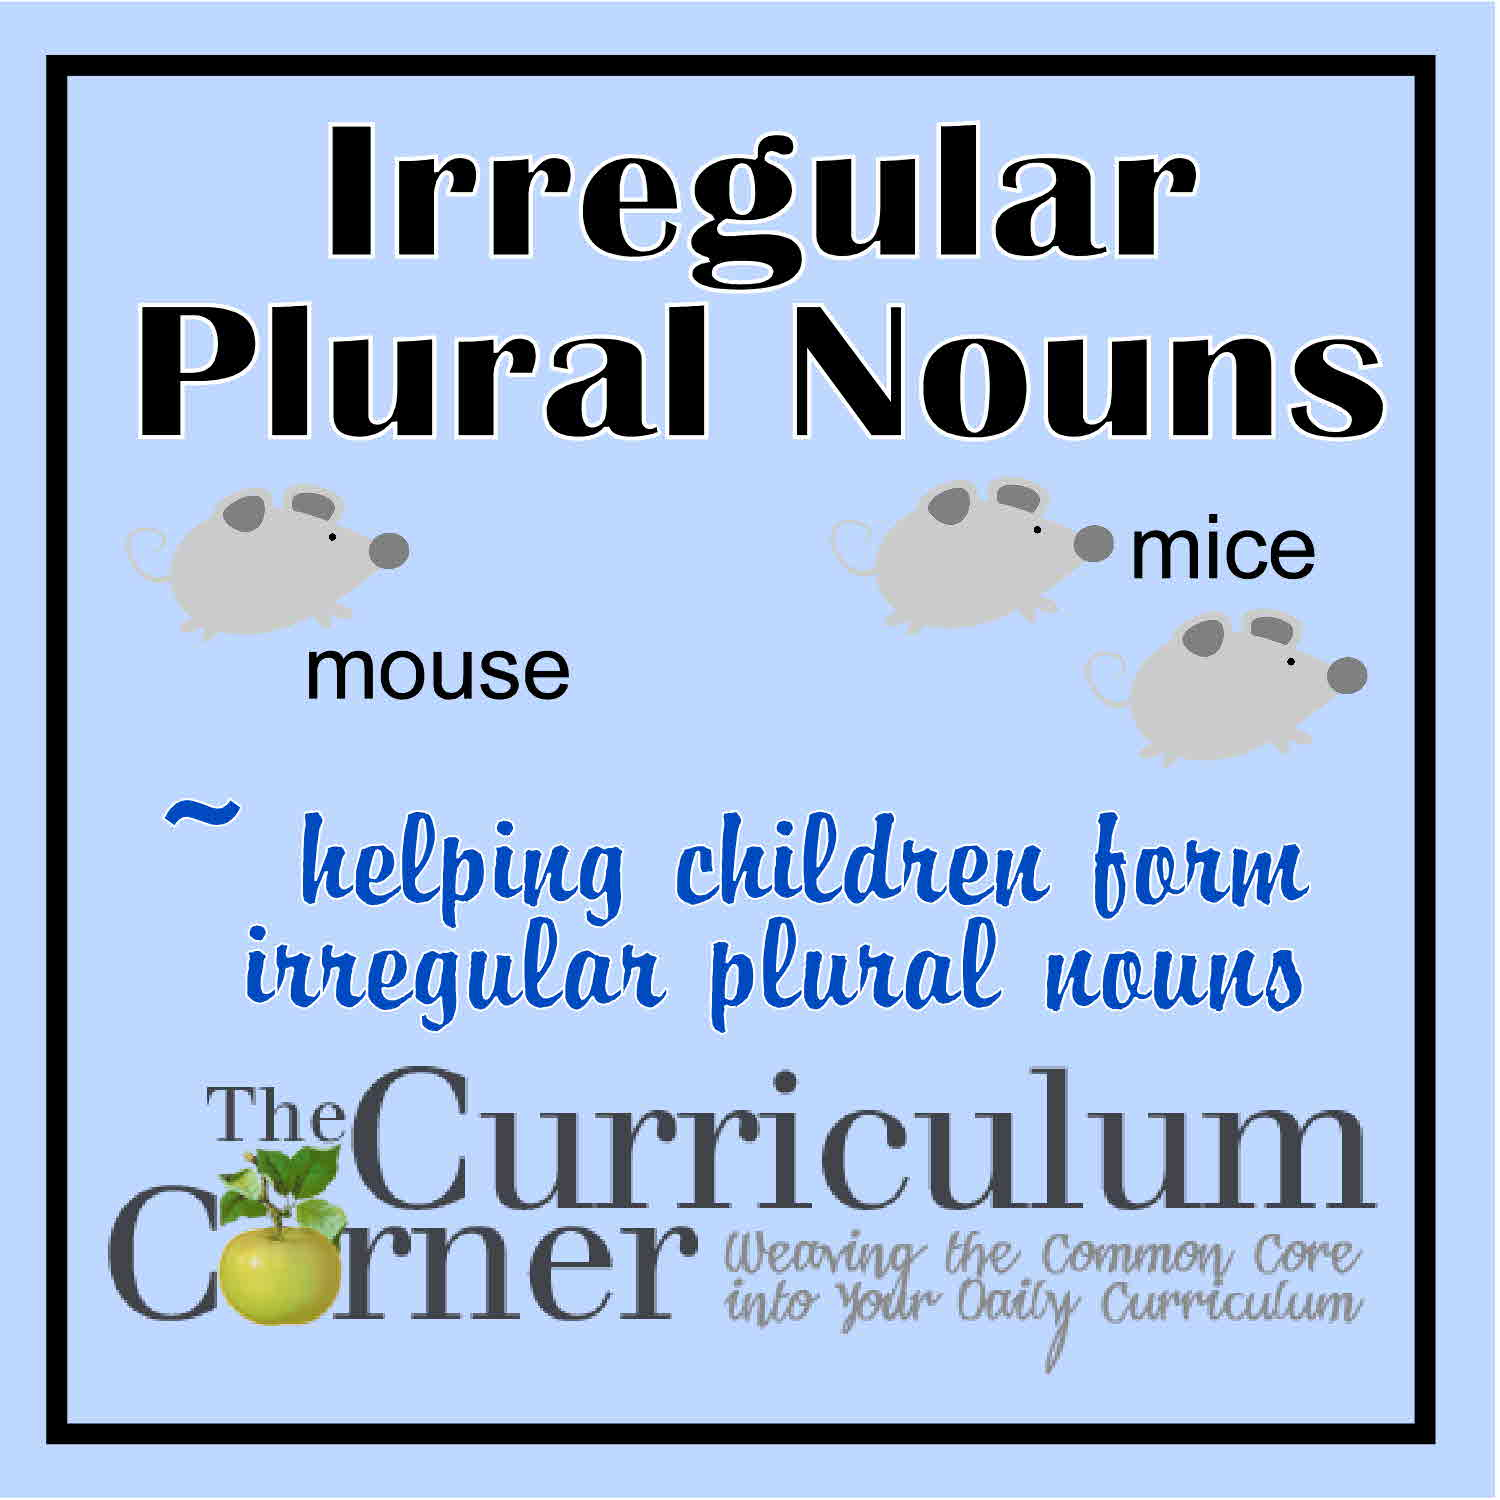 ... abcteach.com/documents/worksheet-irregular-plural-nouns-eslelem-24568